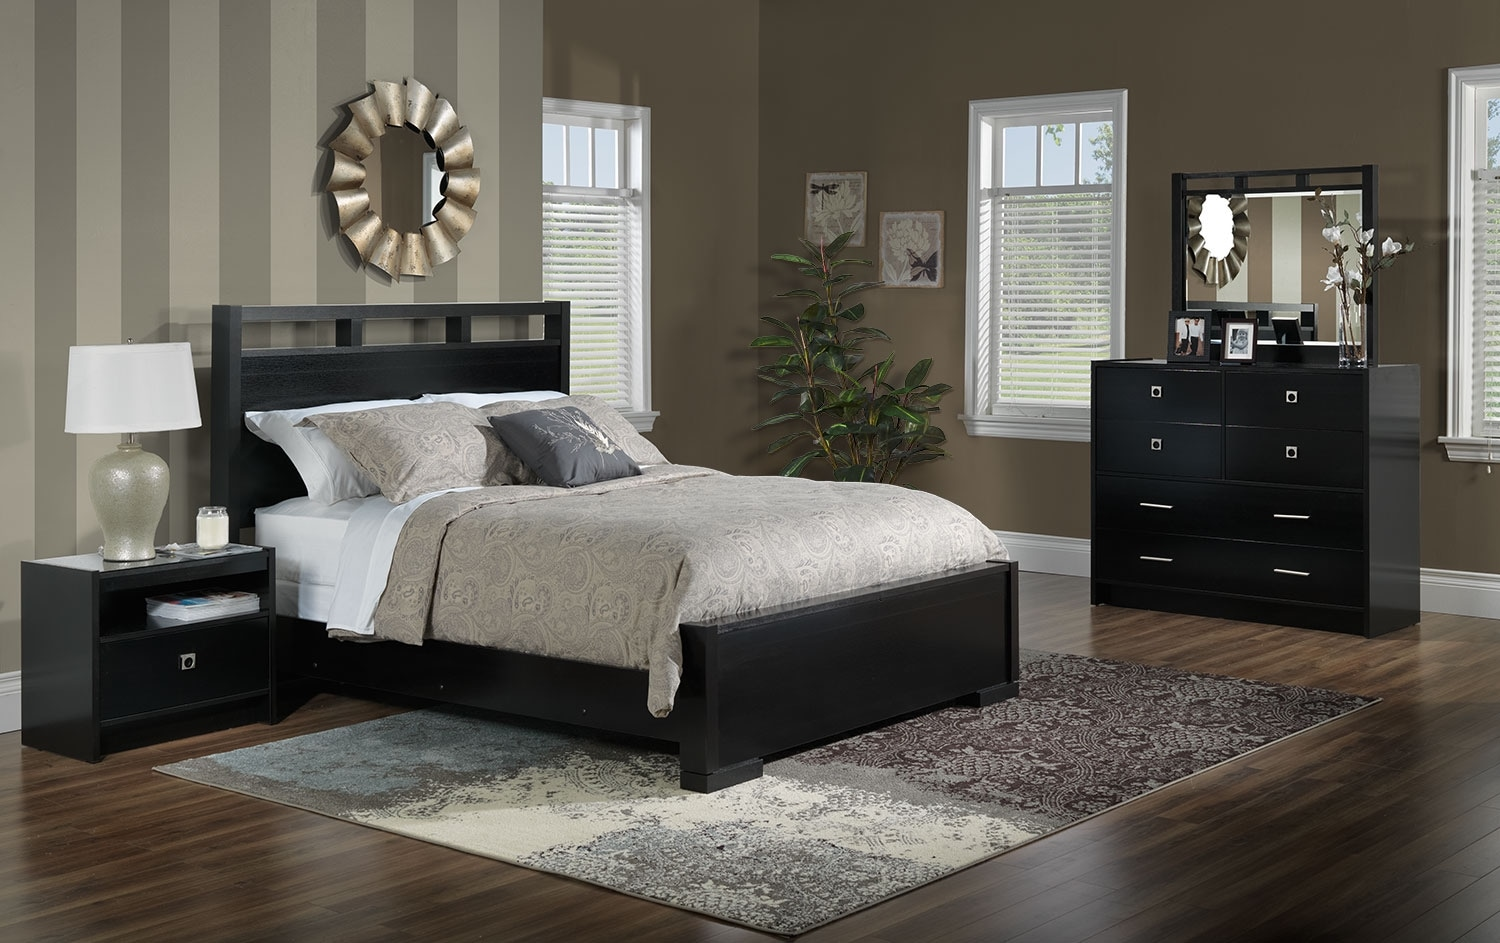 Bedroom Furniture - Altissa 5 Pc. Queen Bedroom Set